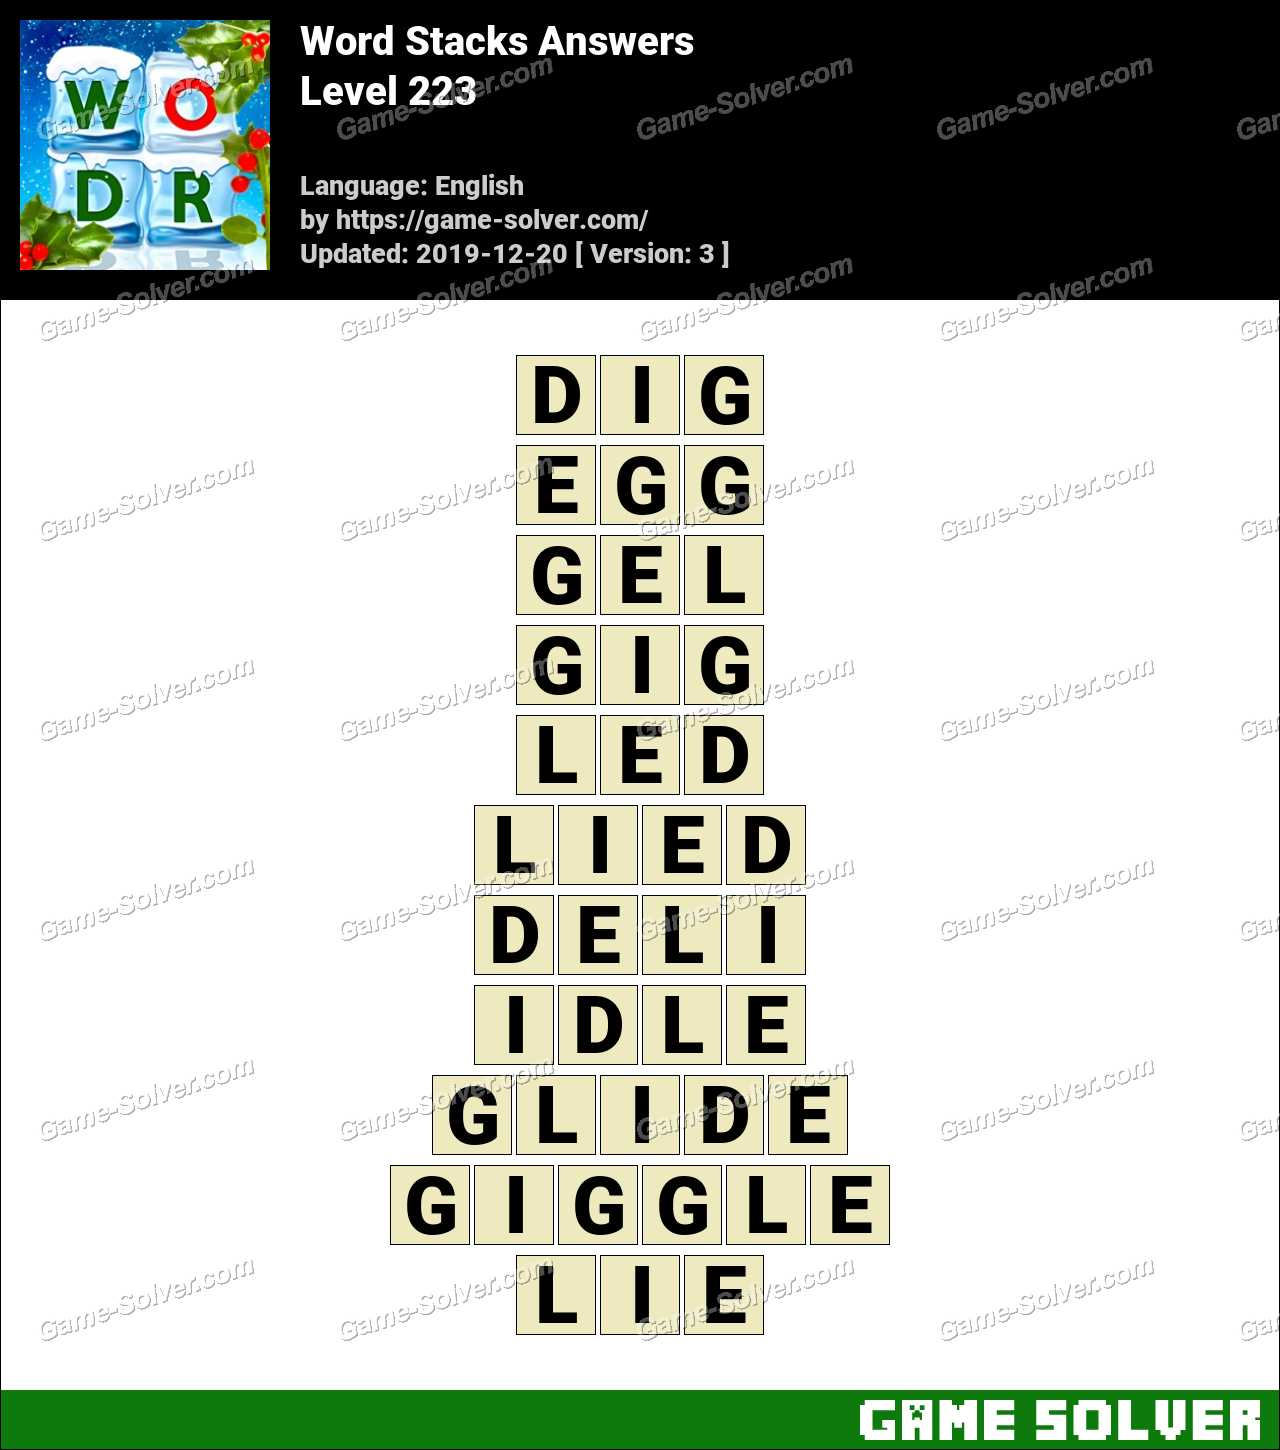 Word Stacks Level 223 Answers